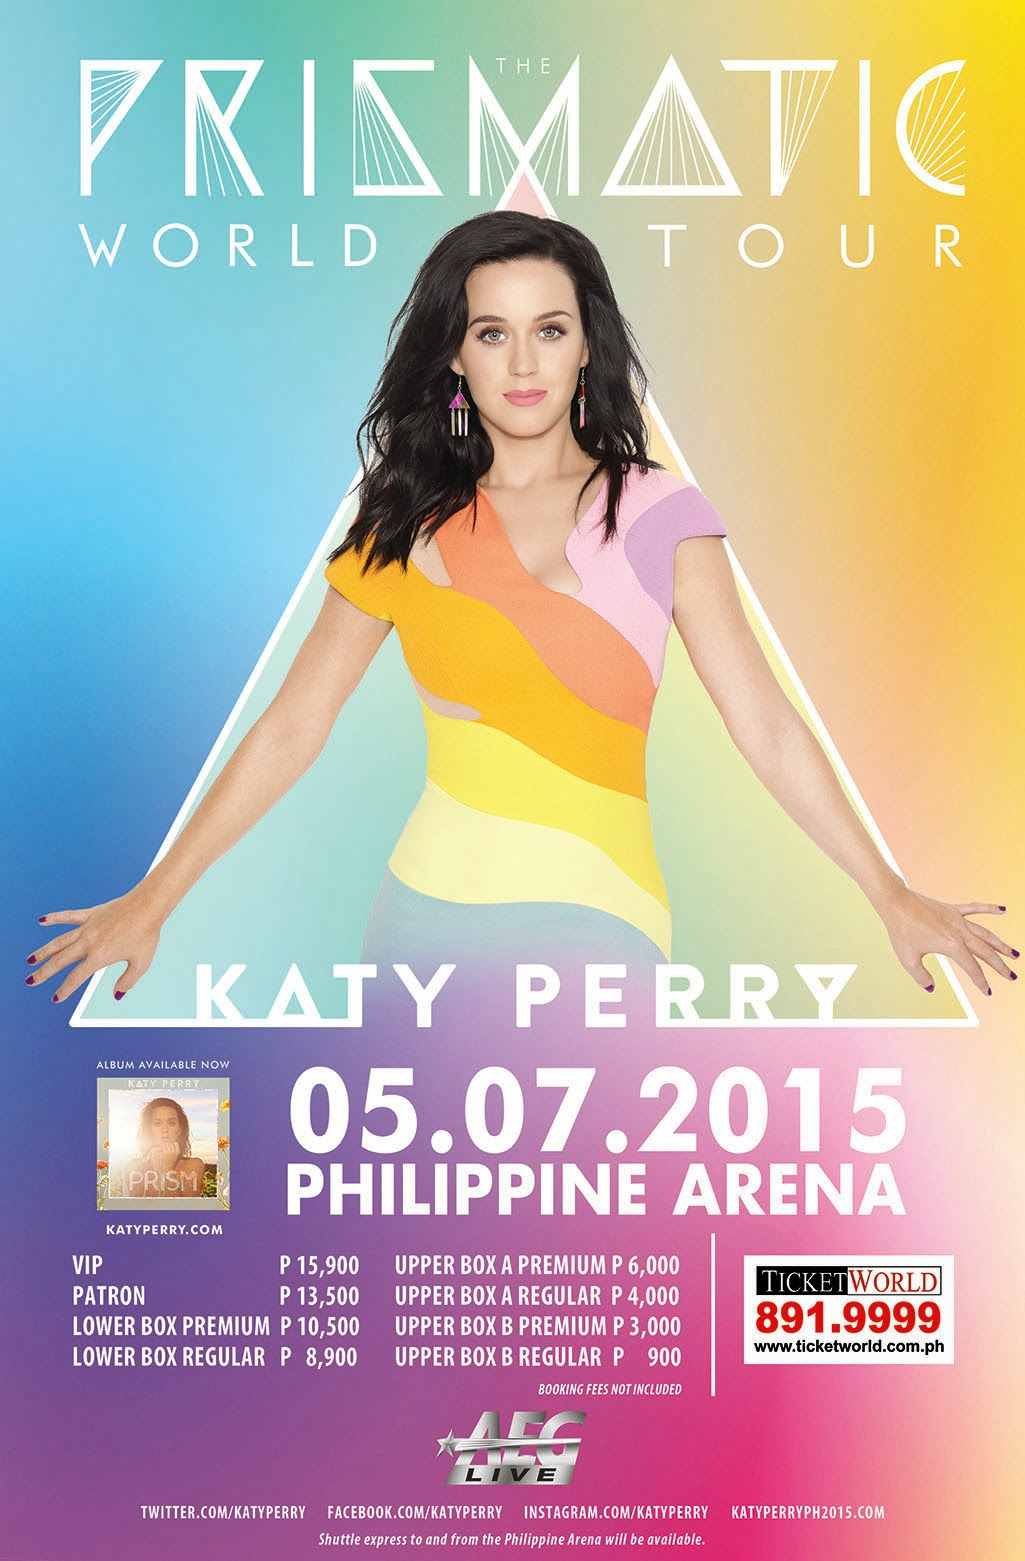 The Prismatic World Tour Katy Perry